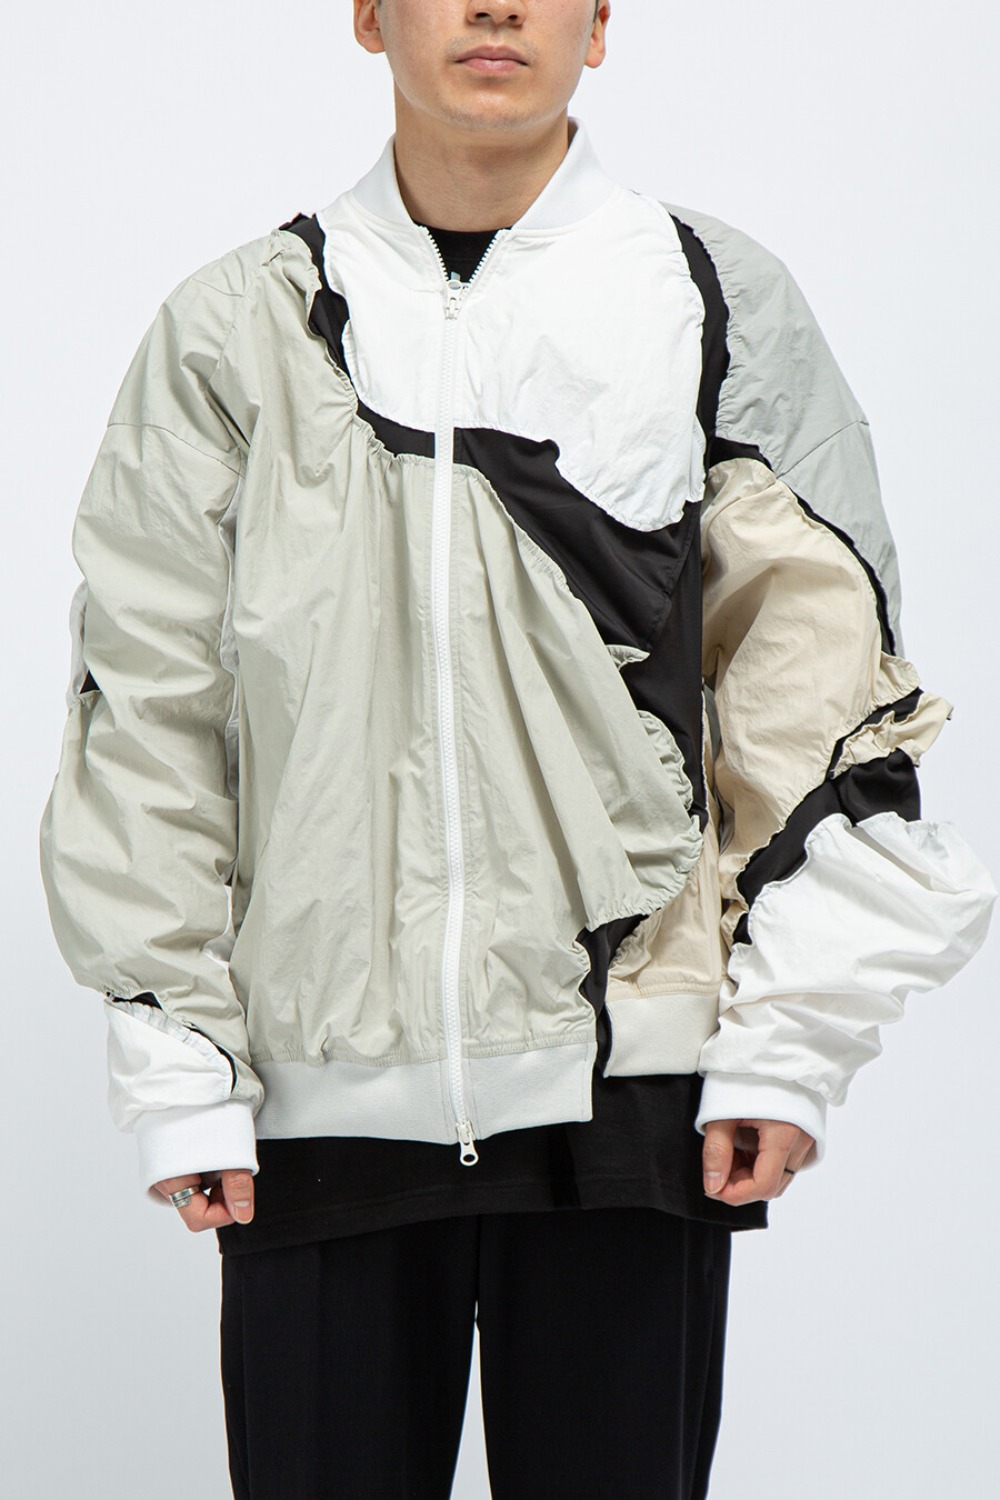 3.0 JACKET LEFT WHITE/GREY